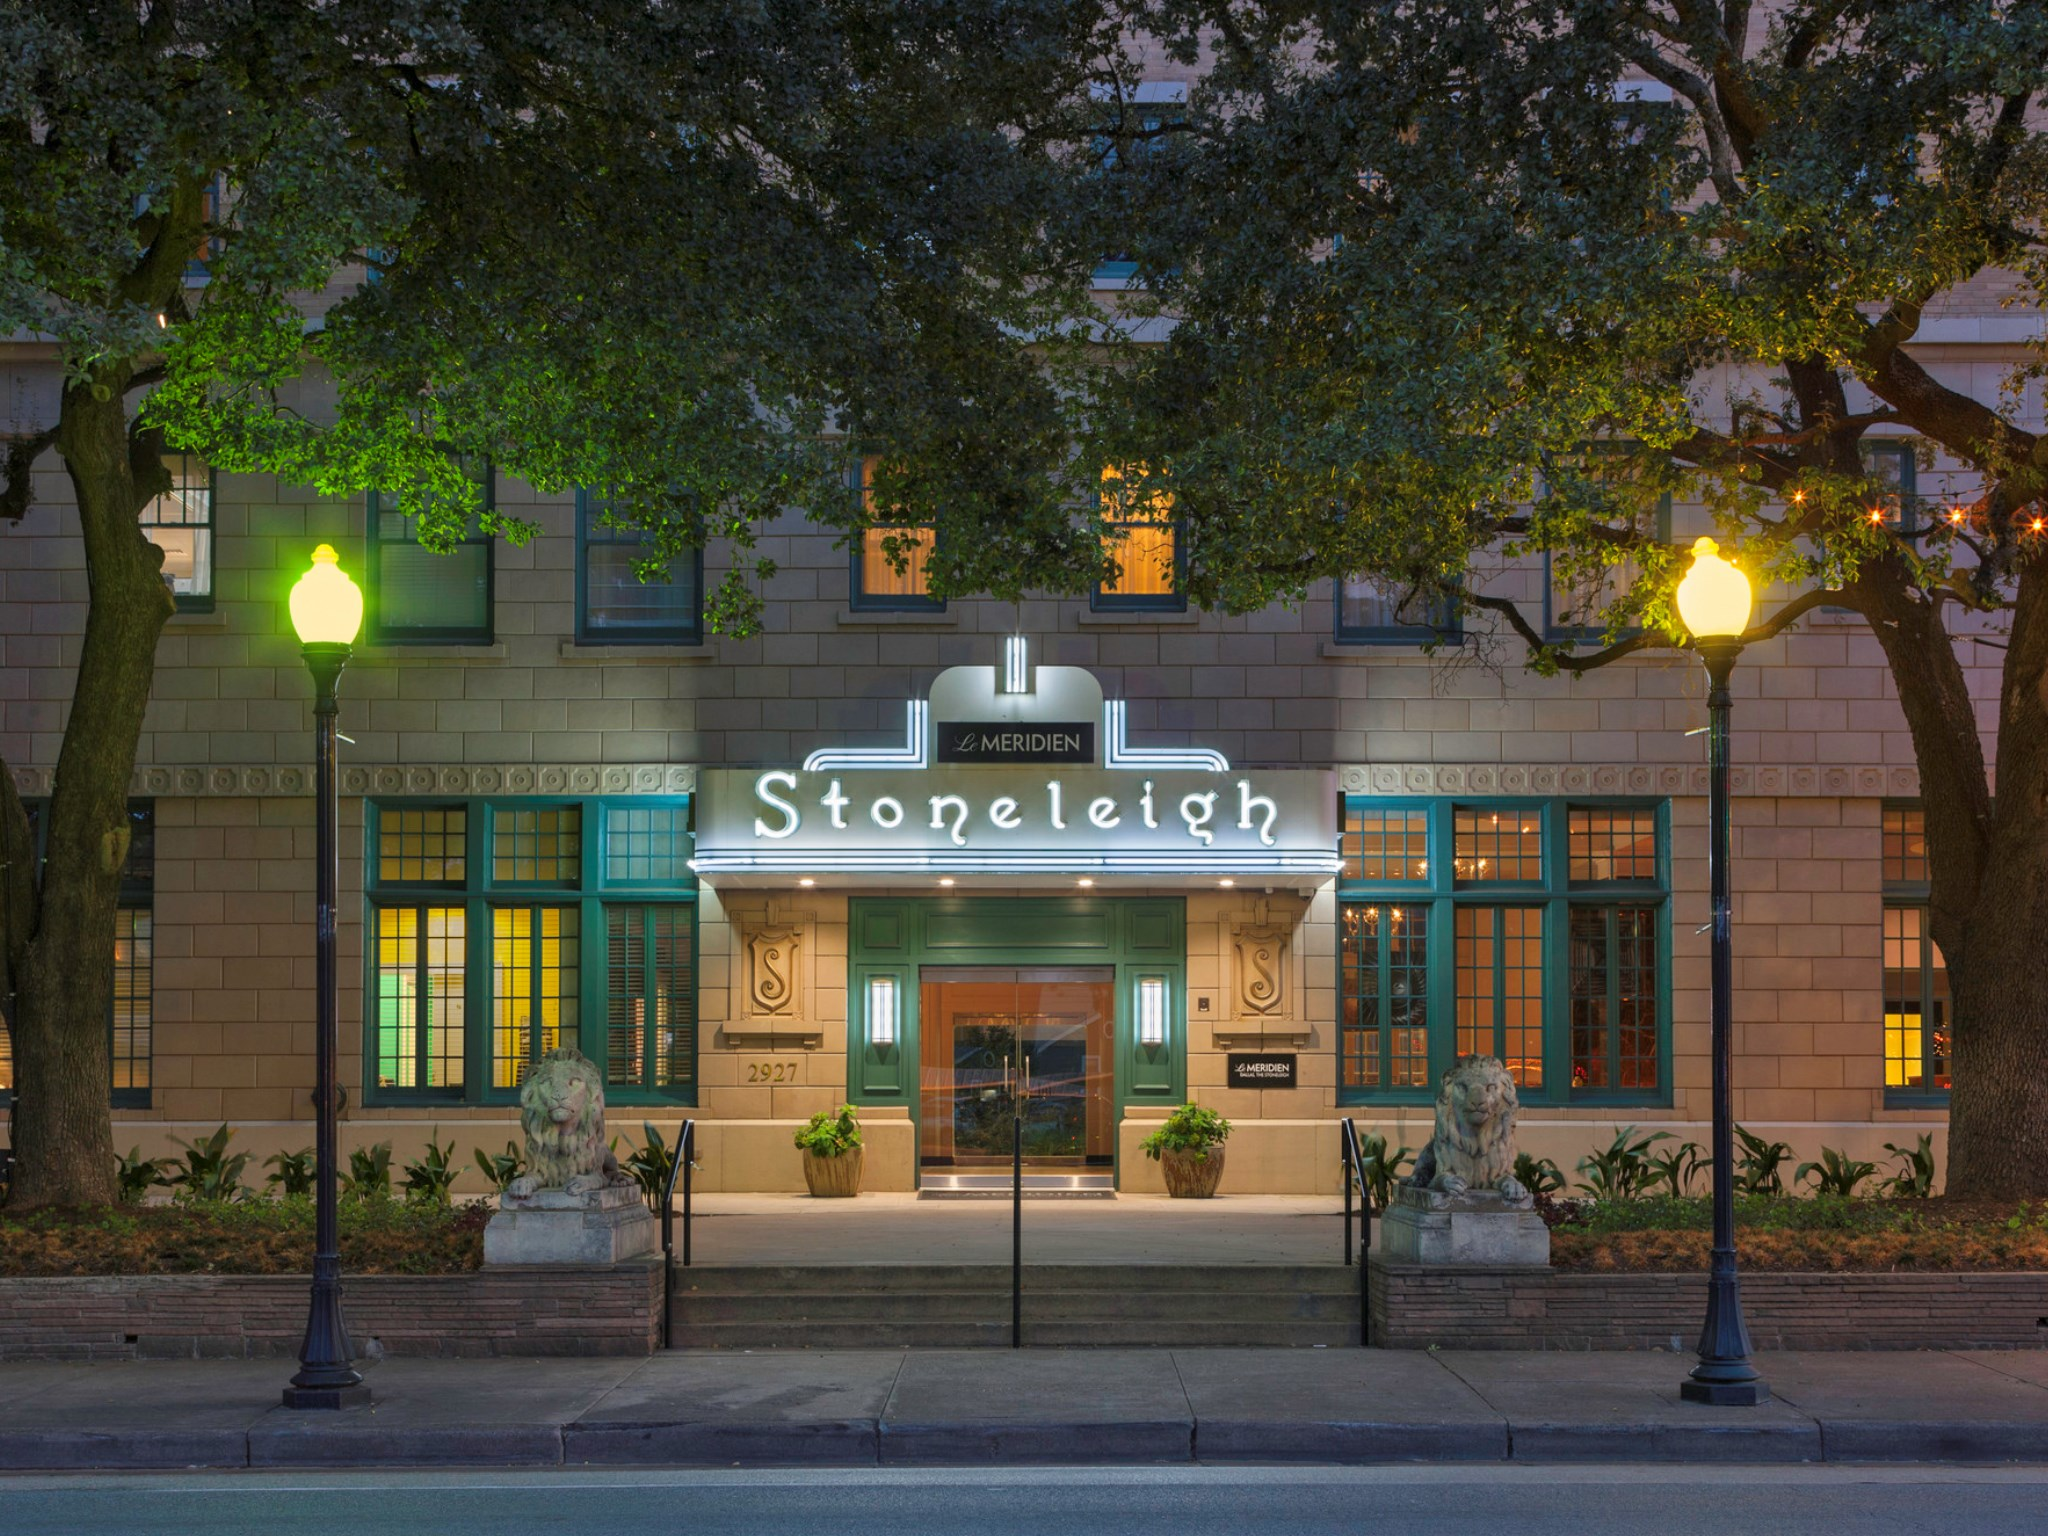 Le Mridien Dallas The Stoneleigh Adds Ben Olin As Gm Hotel Meriden Management